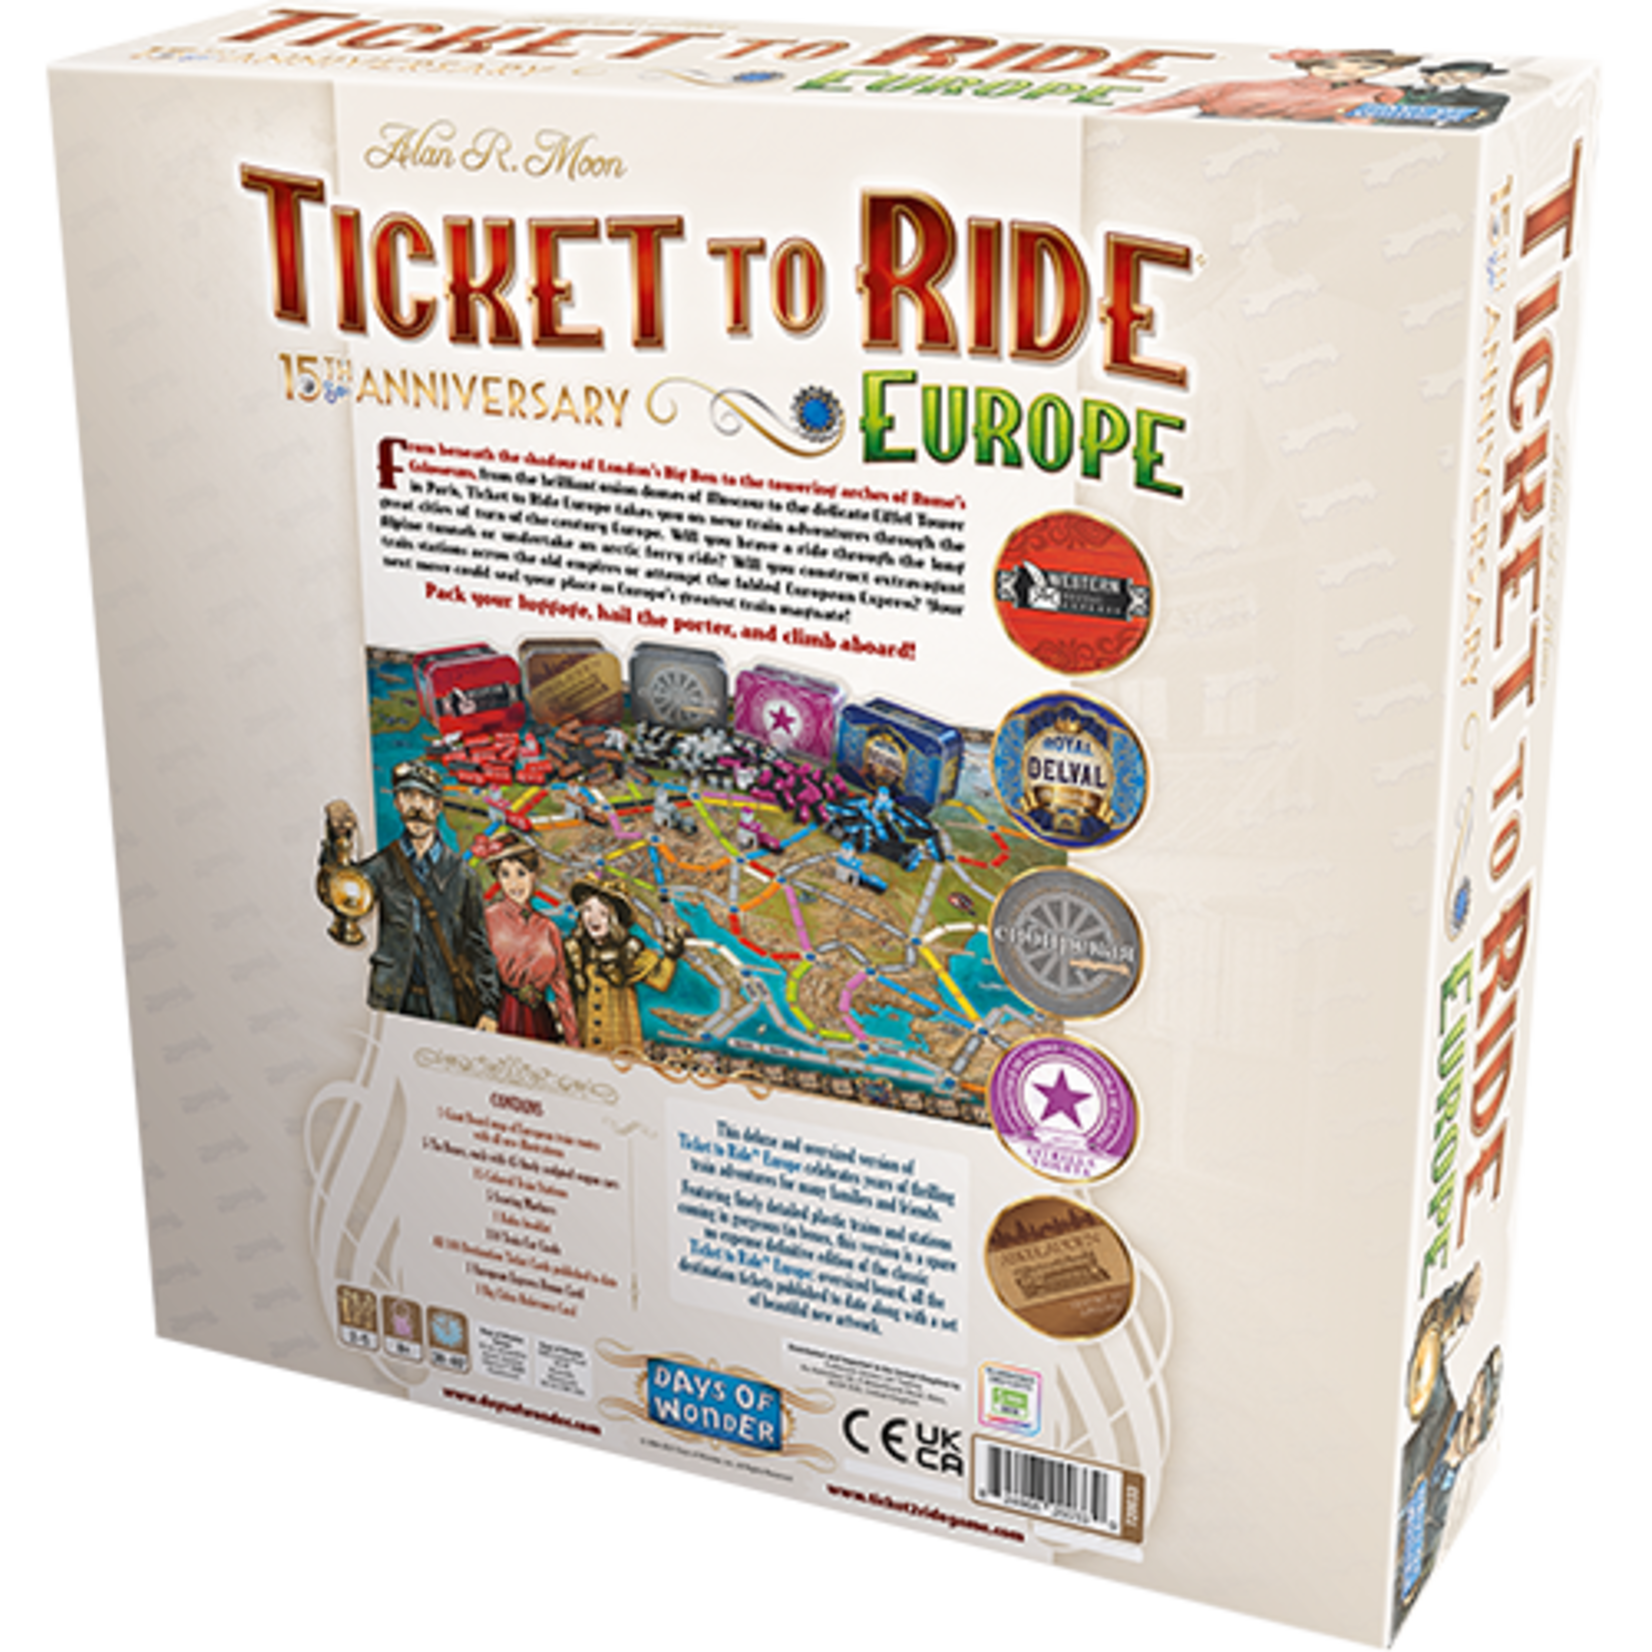 Days of Wonder Ticket to Ride Europe: 15th Anniversary Edition